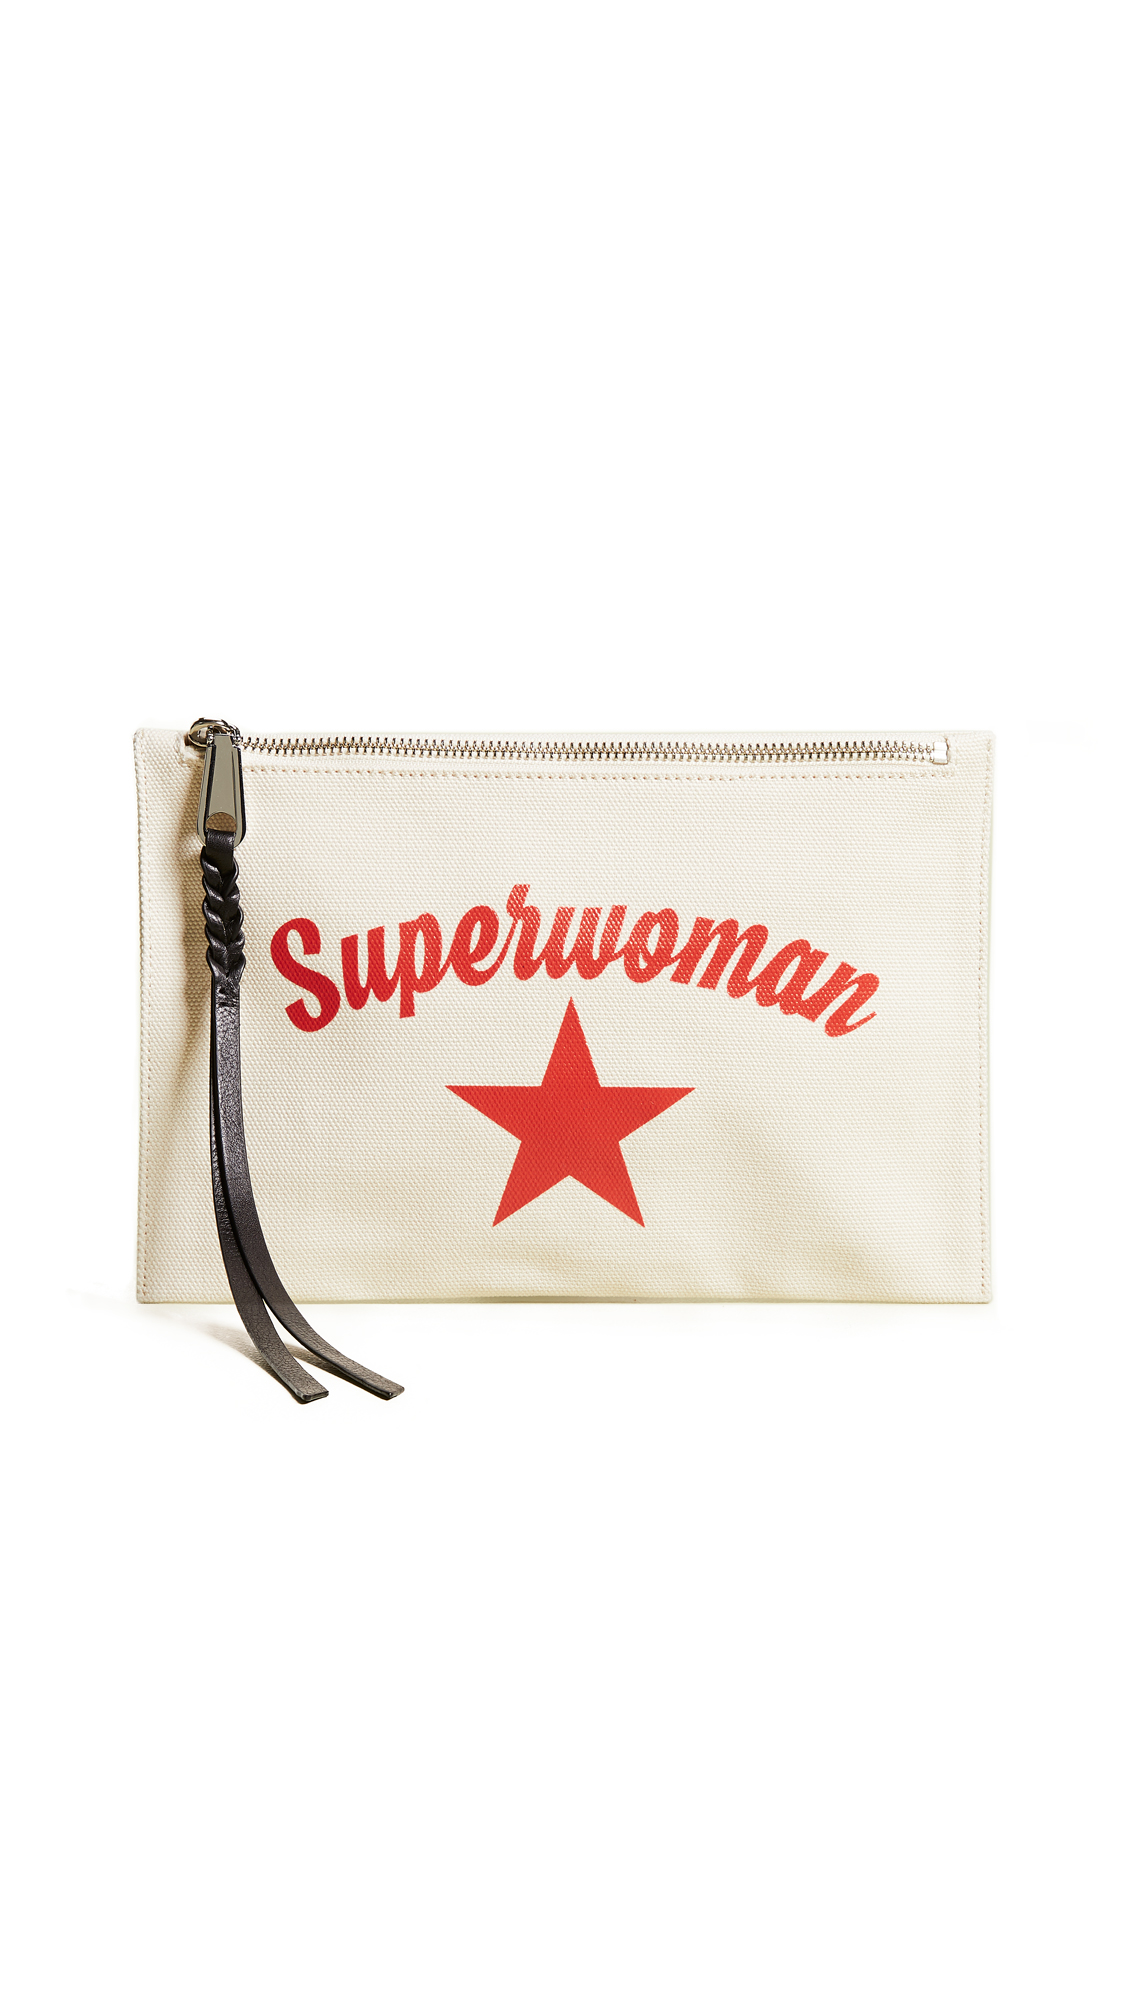 Superwoman Medium Zip Pouch - Ivory, Cream